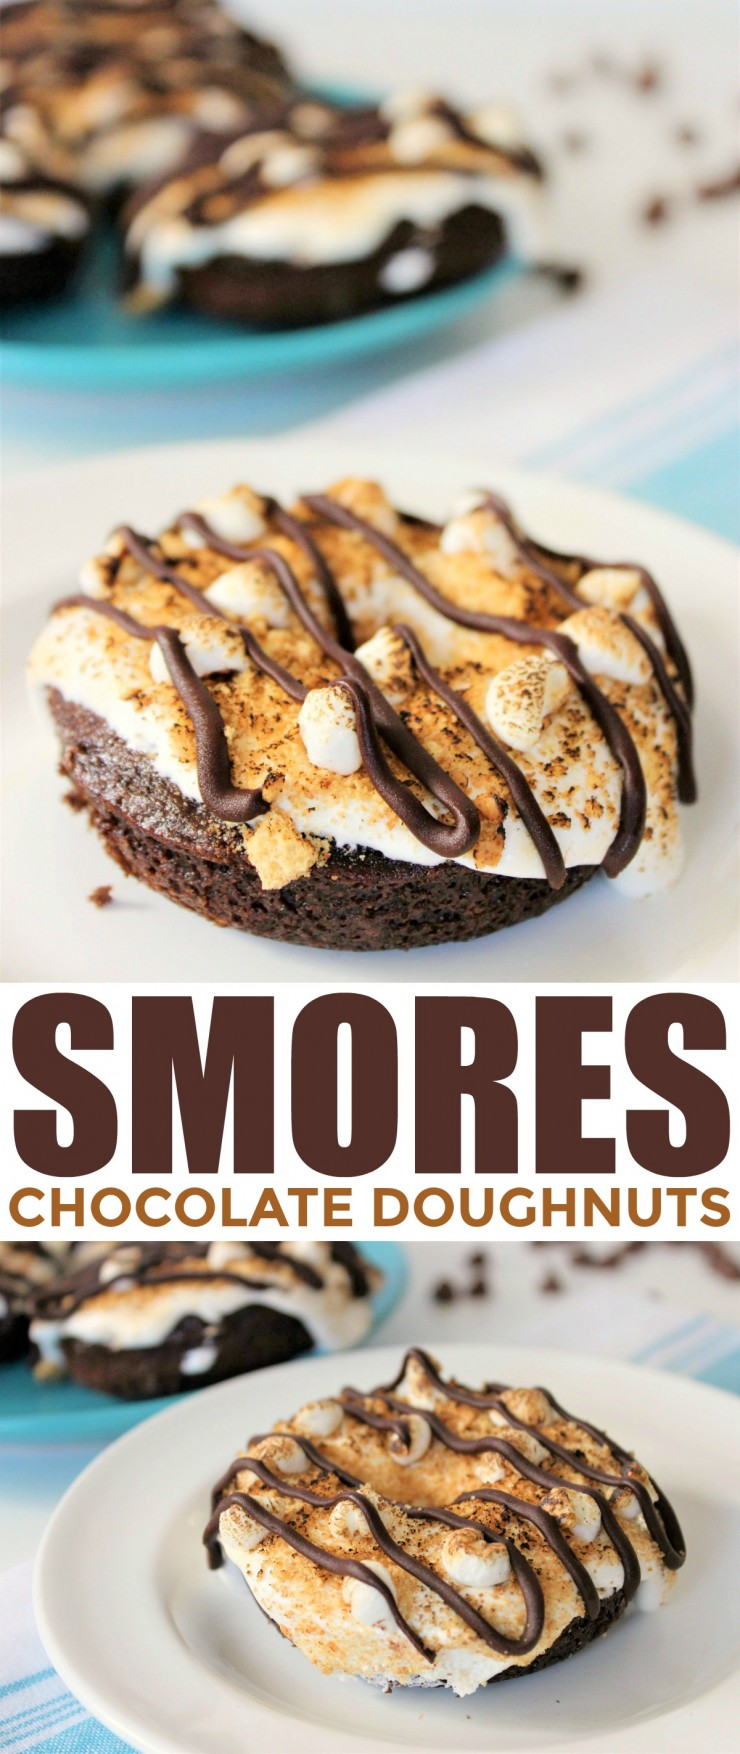 These indulgent S'Mores Chocolate Donuts are a real treat you are sure to enjoy, even if you can't sit by a camp fire.